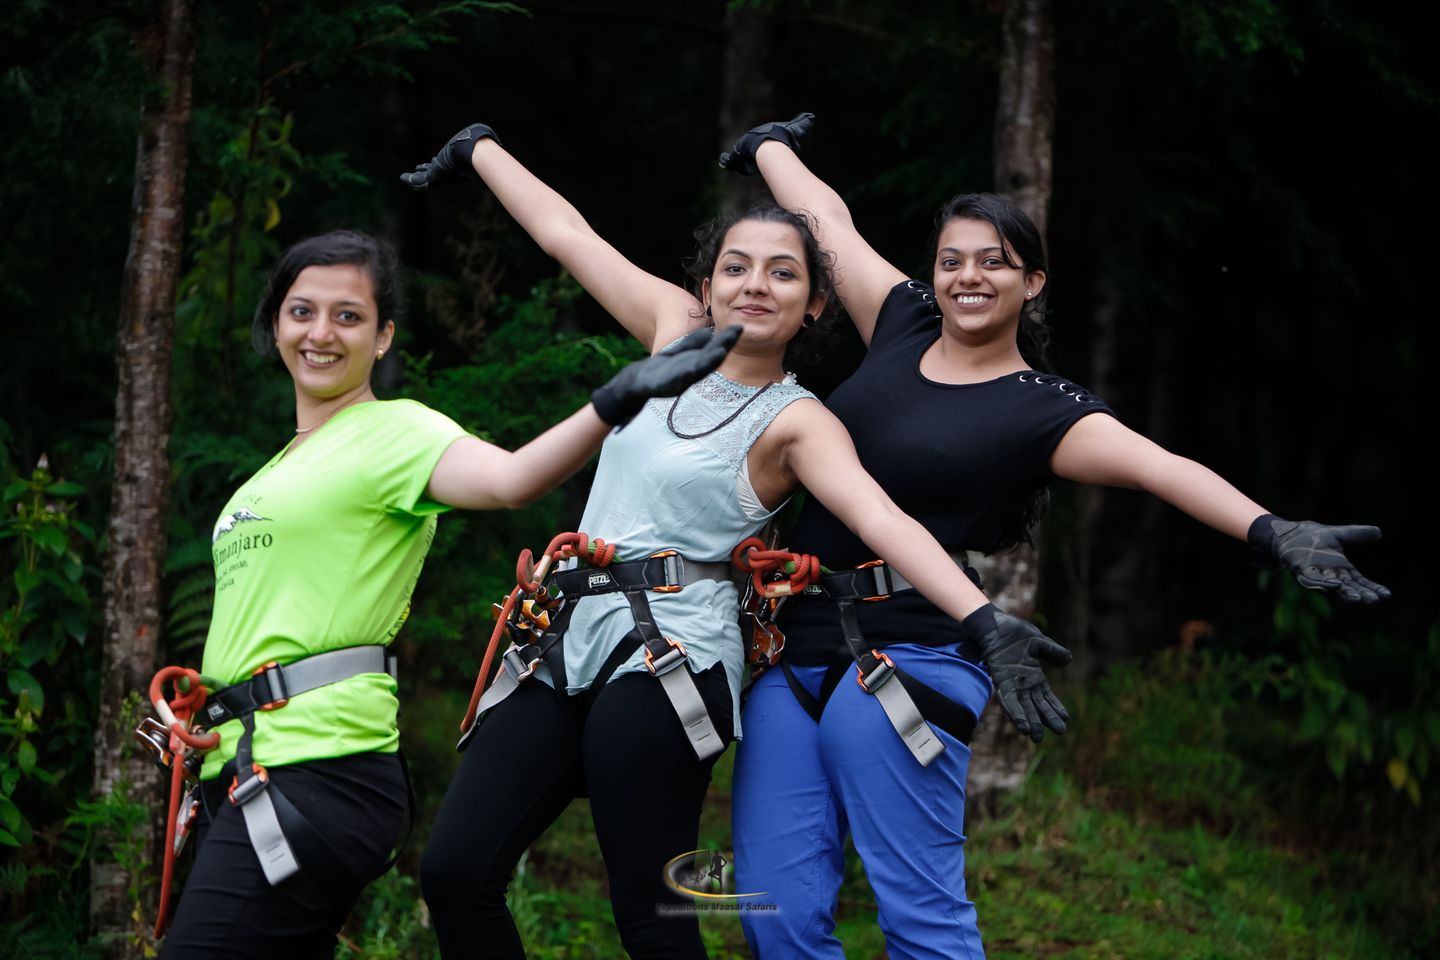 Expeditions ladies ready to zipline at Kereita Kenya